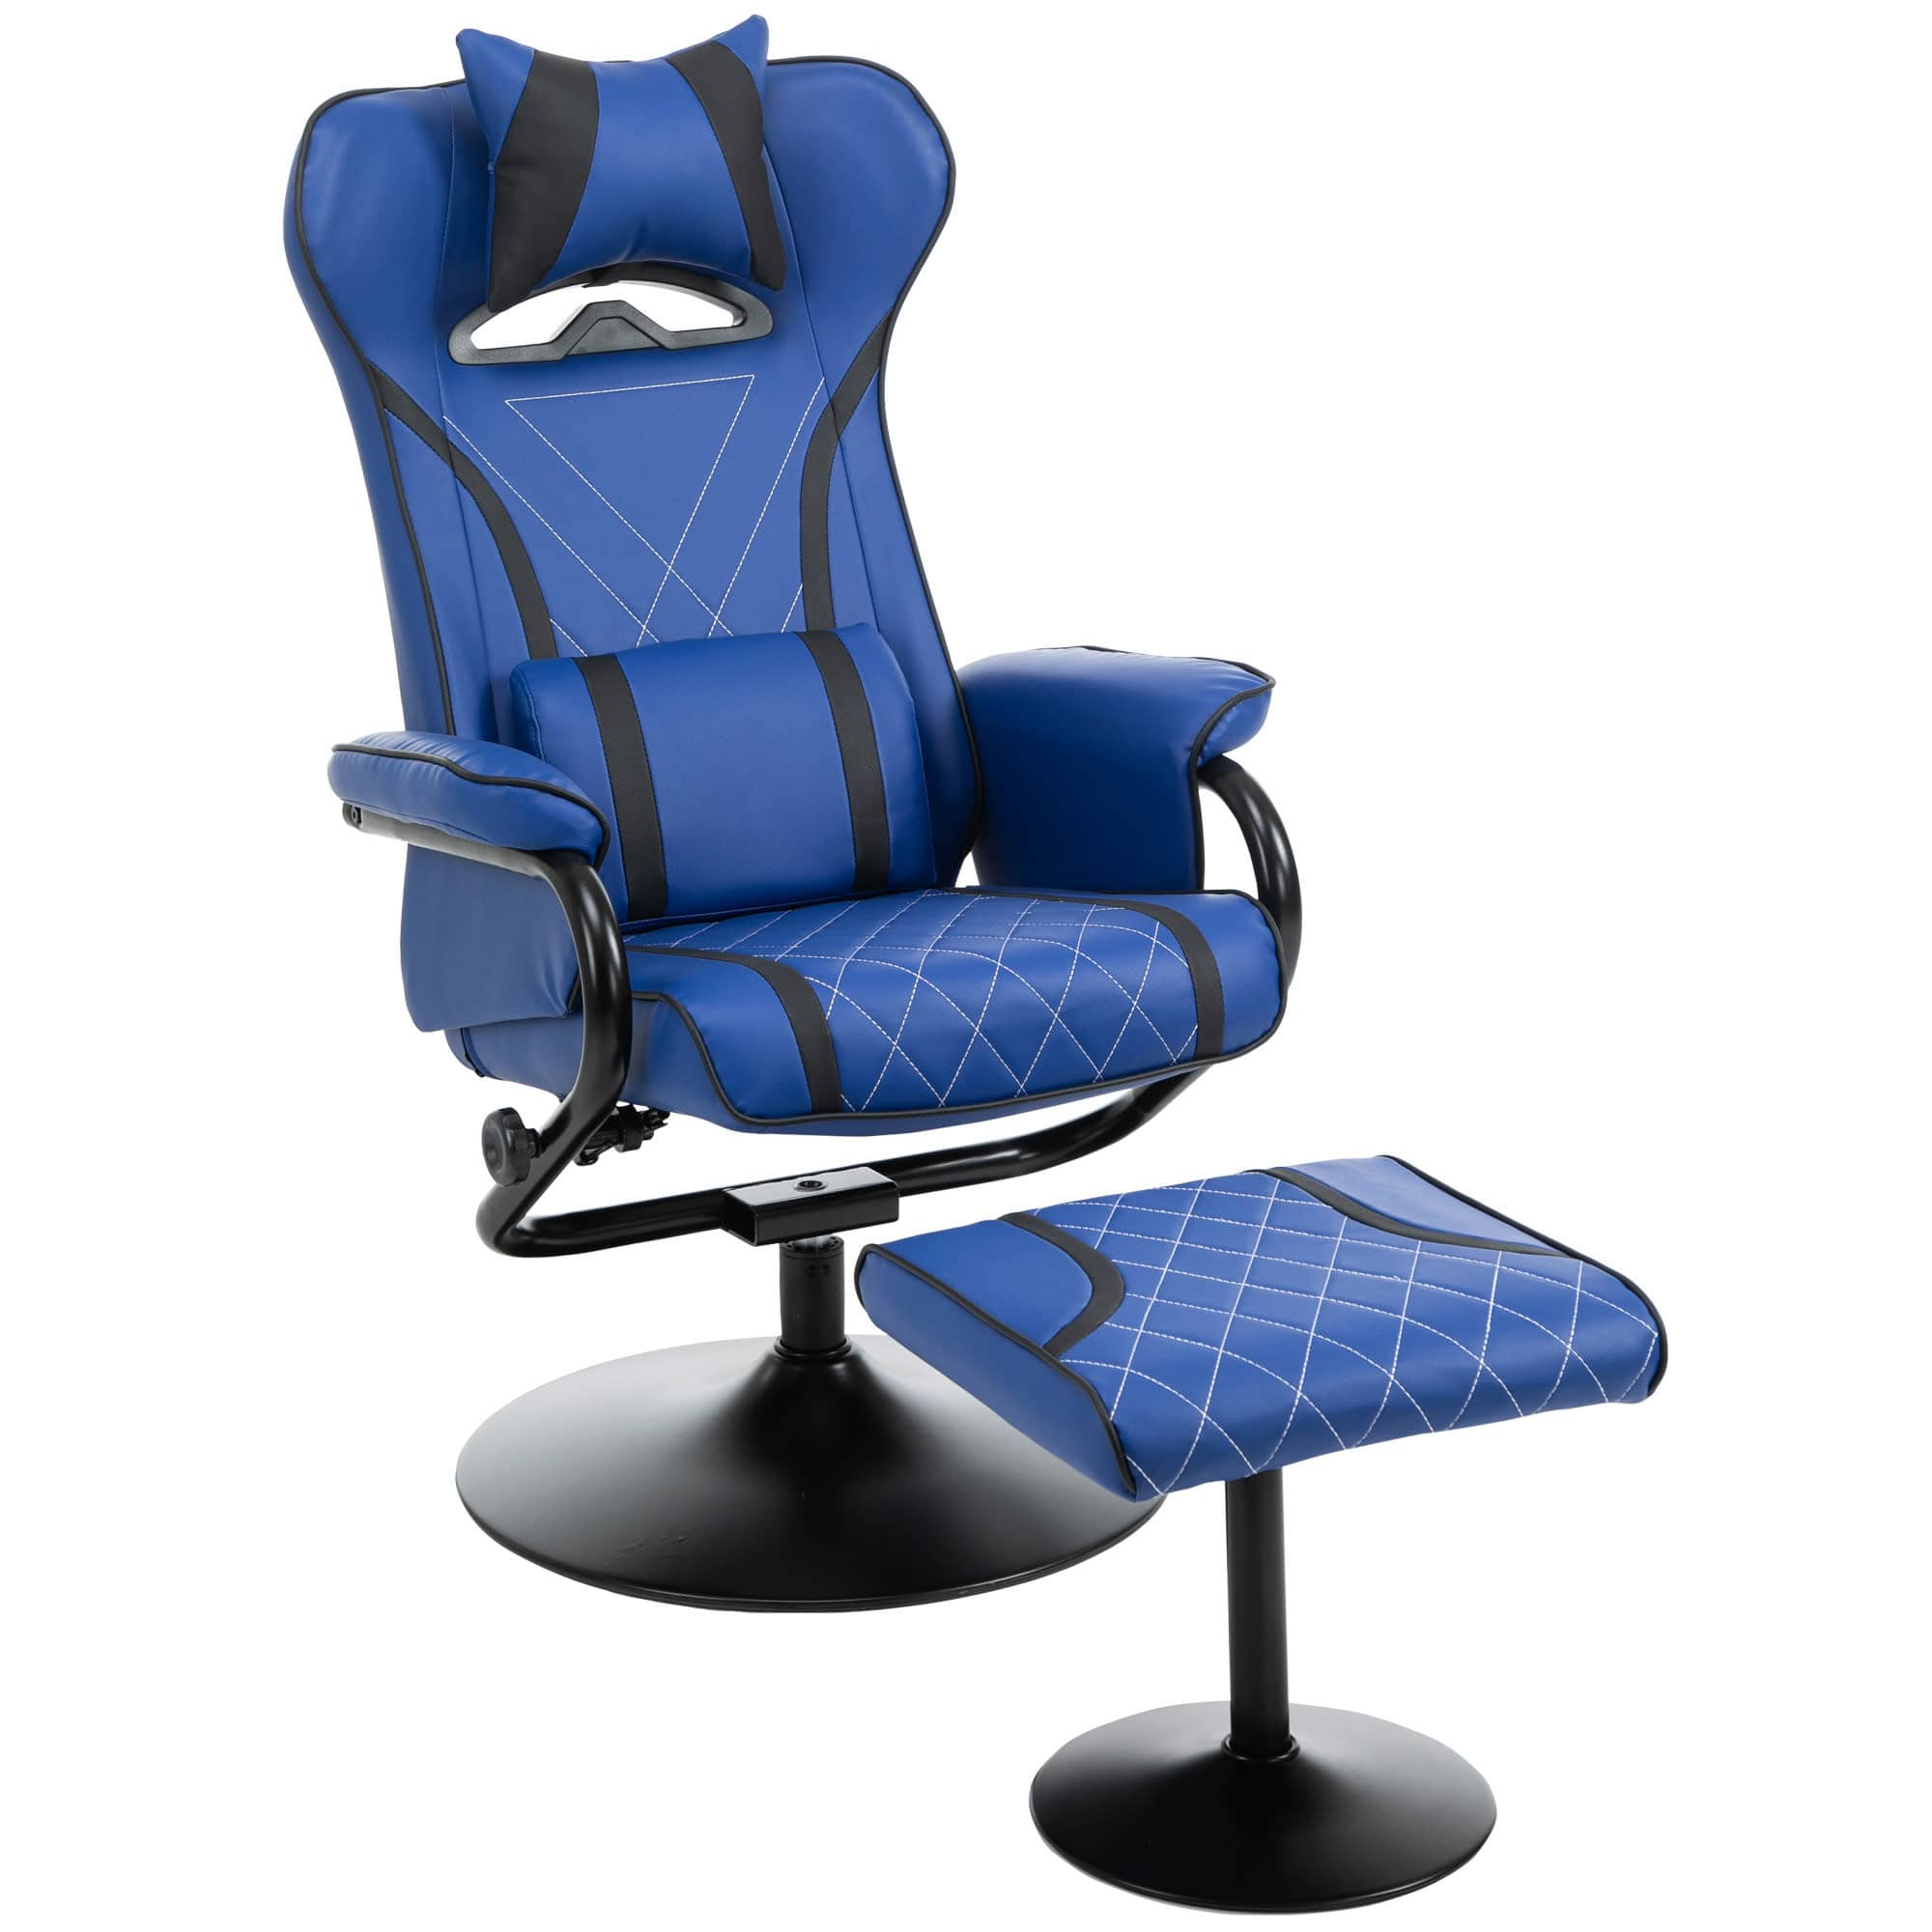 Homcom Racing Style Recliner with Ottoman